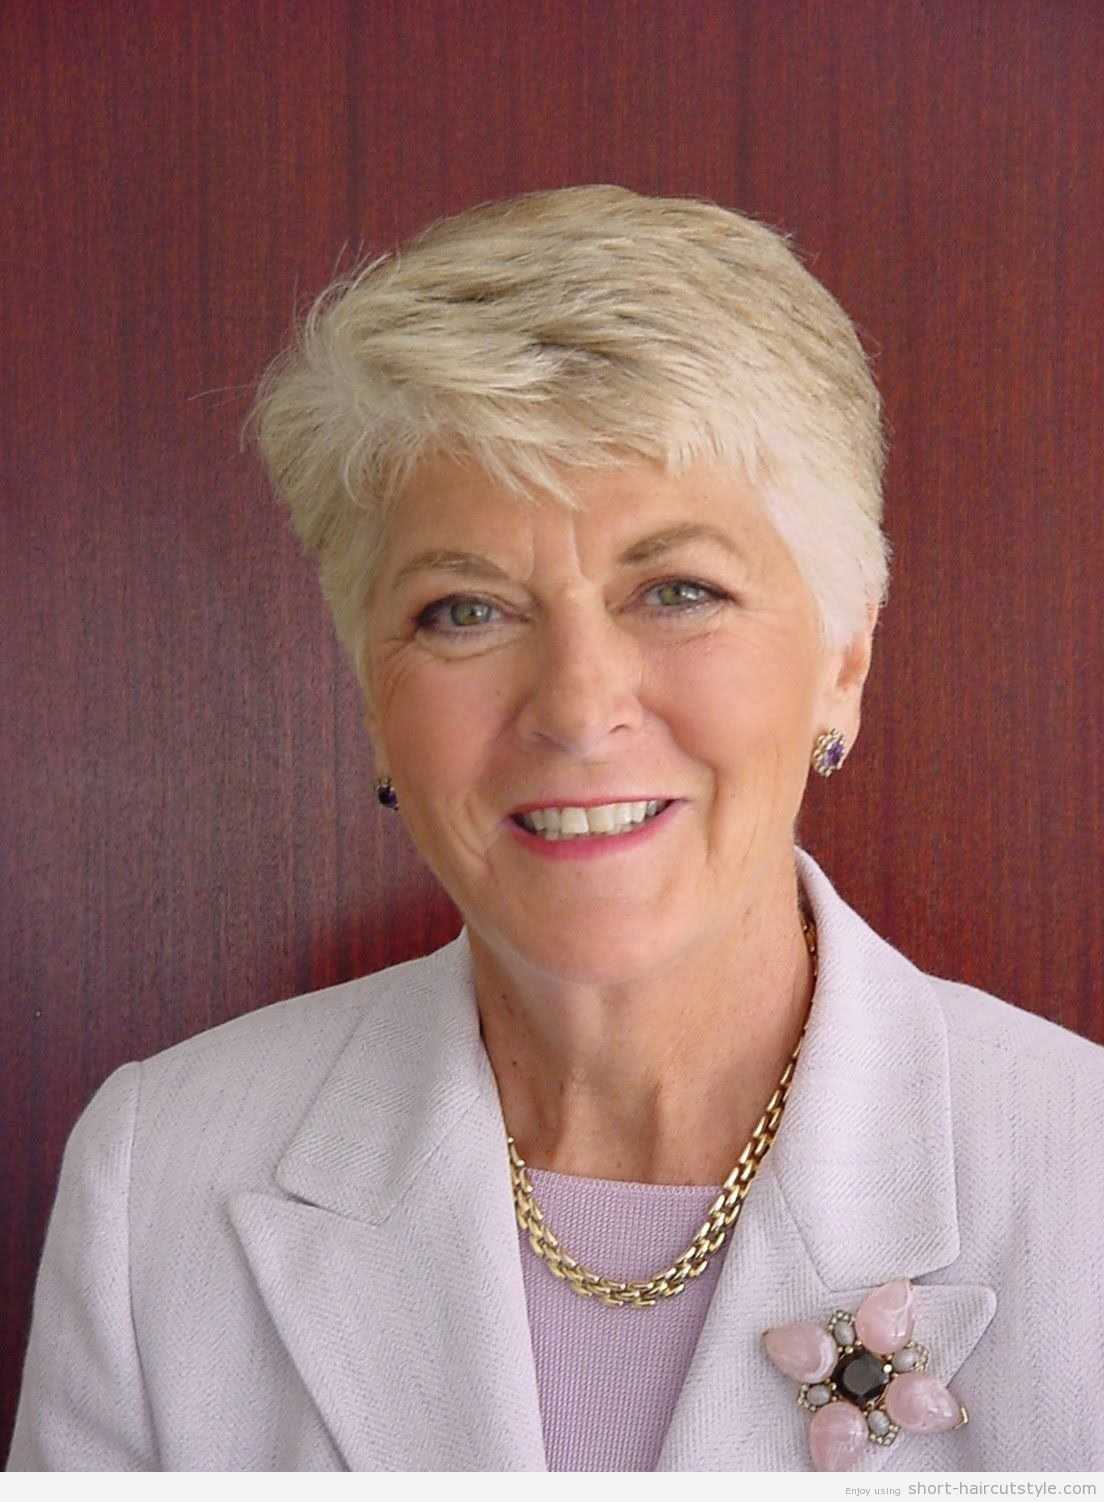 Short Hairstyles For Women Over 60 With Fine Hair Short Hairstyles 56b85b6214877 Jpg 1 Hair Styles For Women Over 50 Over 60 Hairstyles Older Women Hairstyles